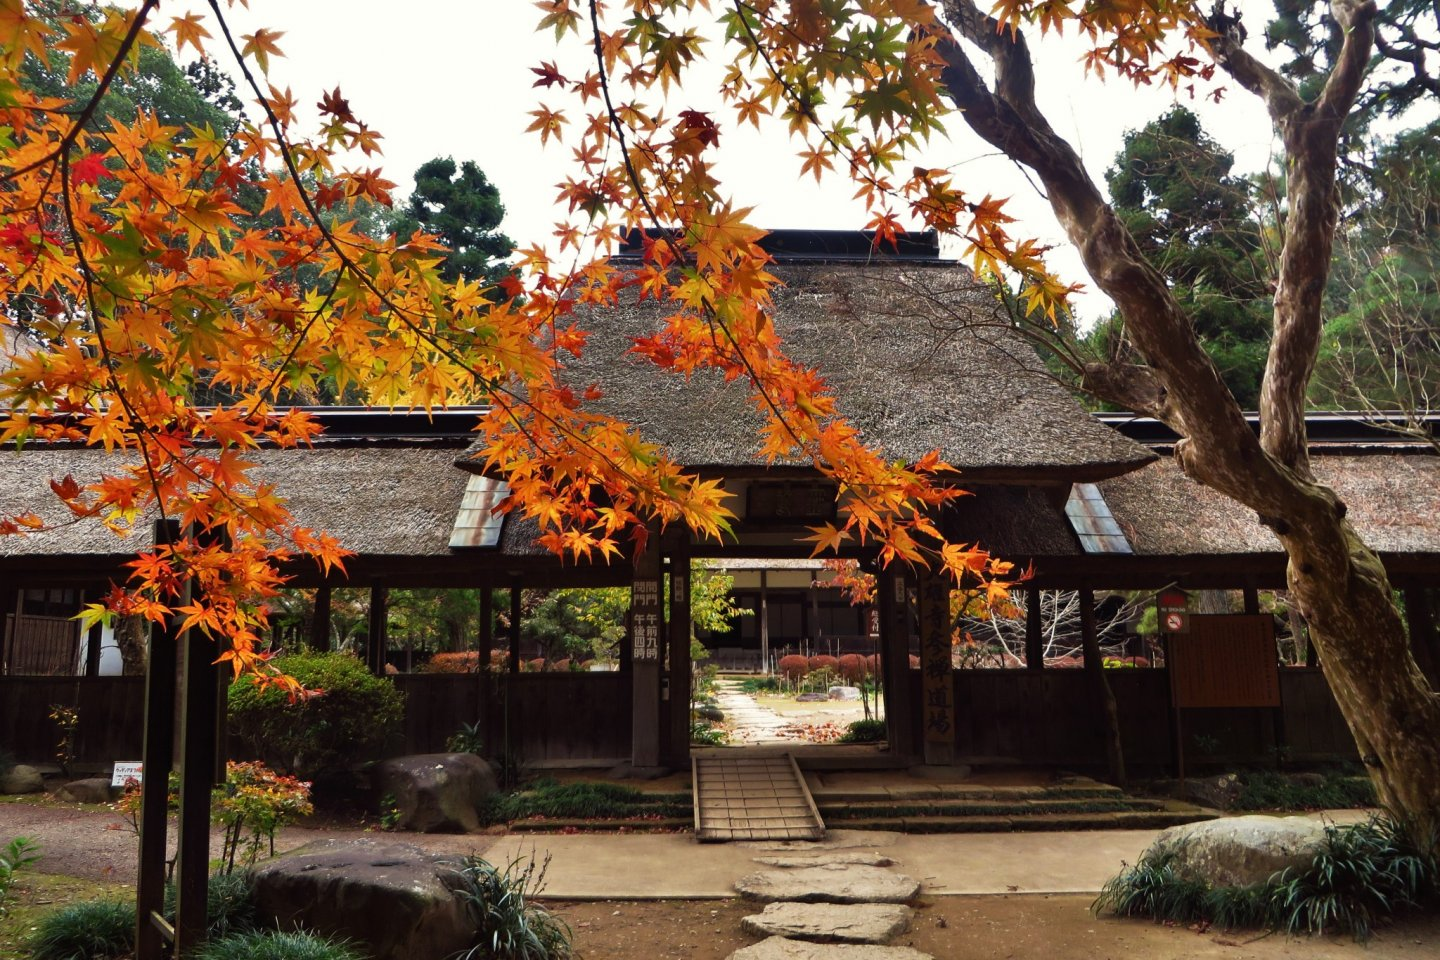 The entrance to Daiyuji(especially beautiful with the autumn leaves)